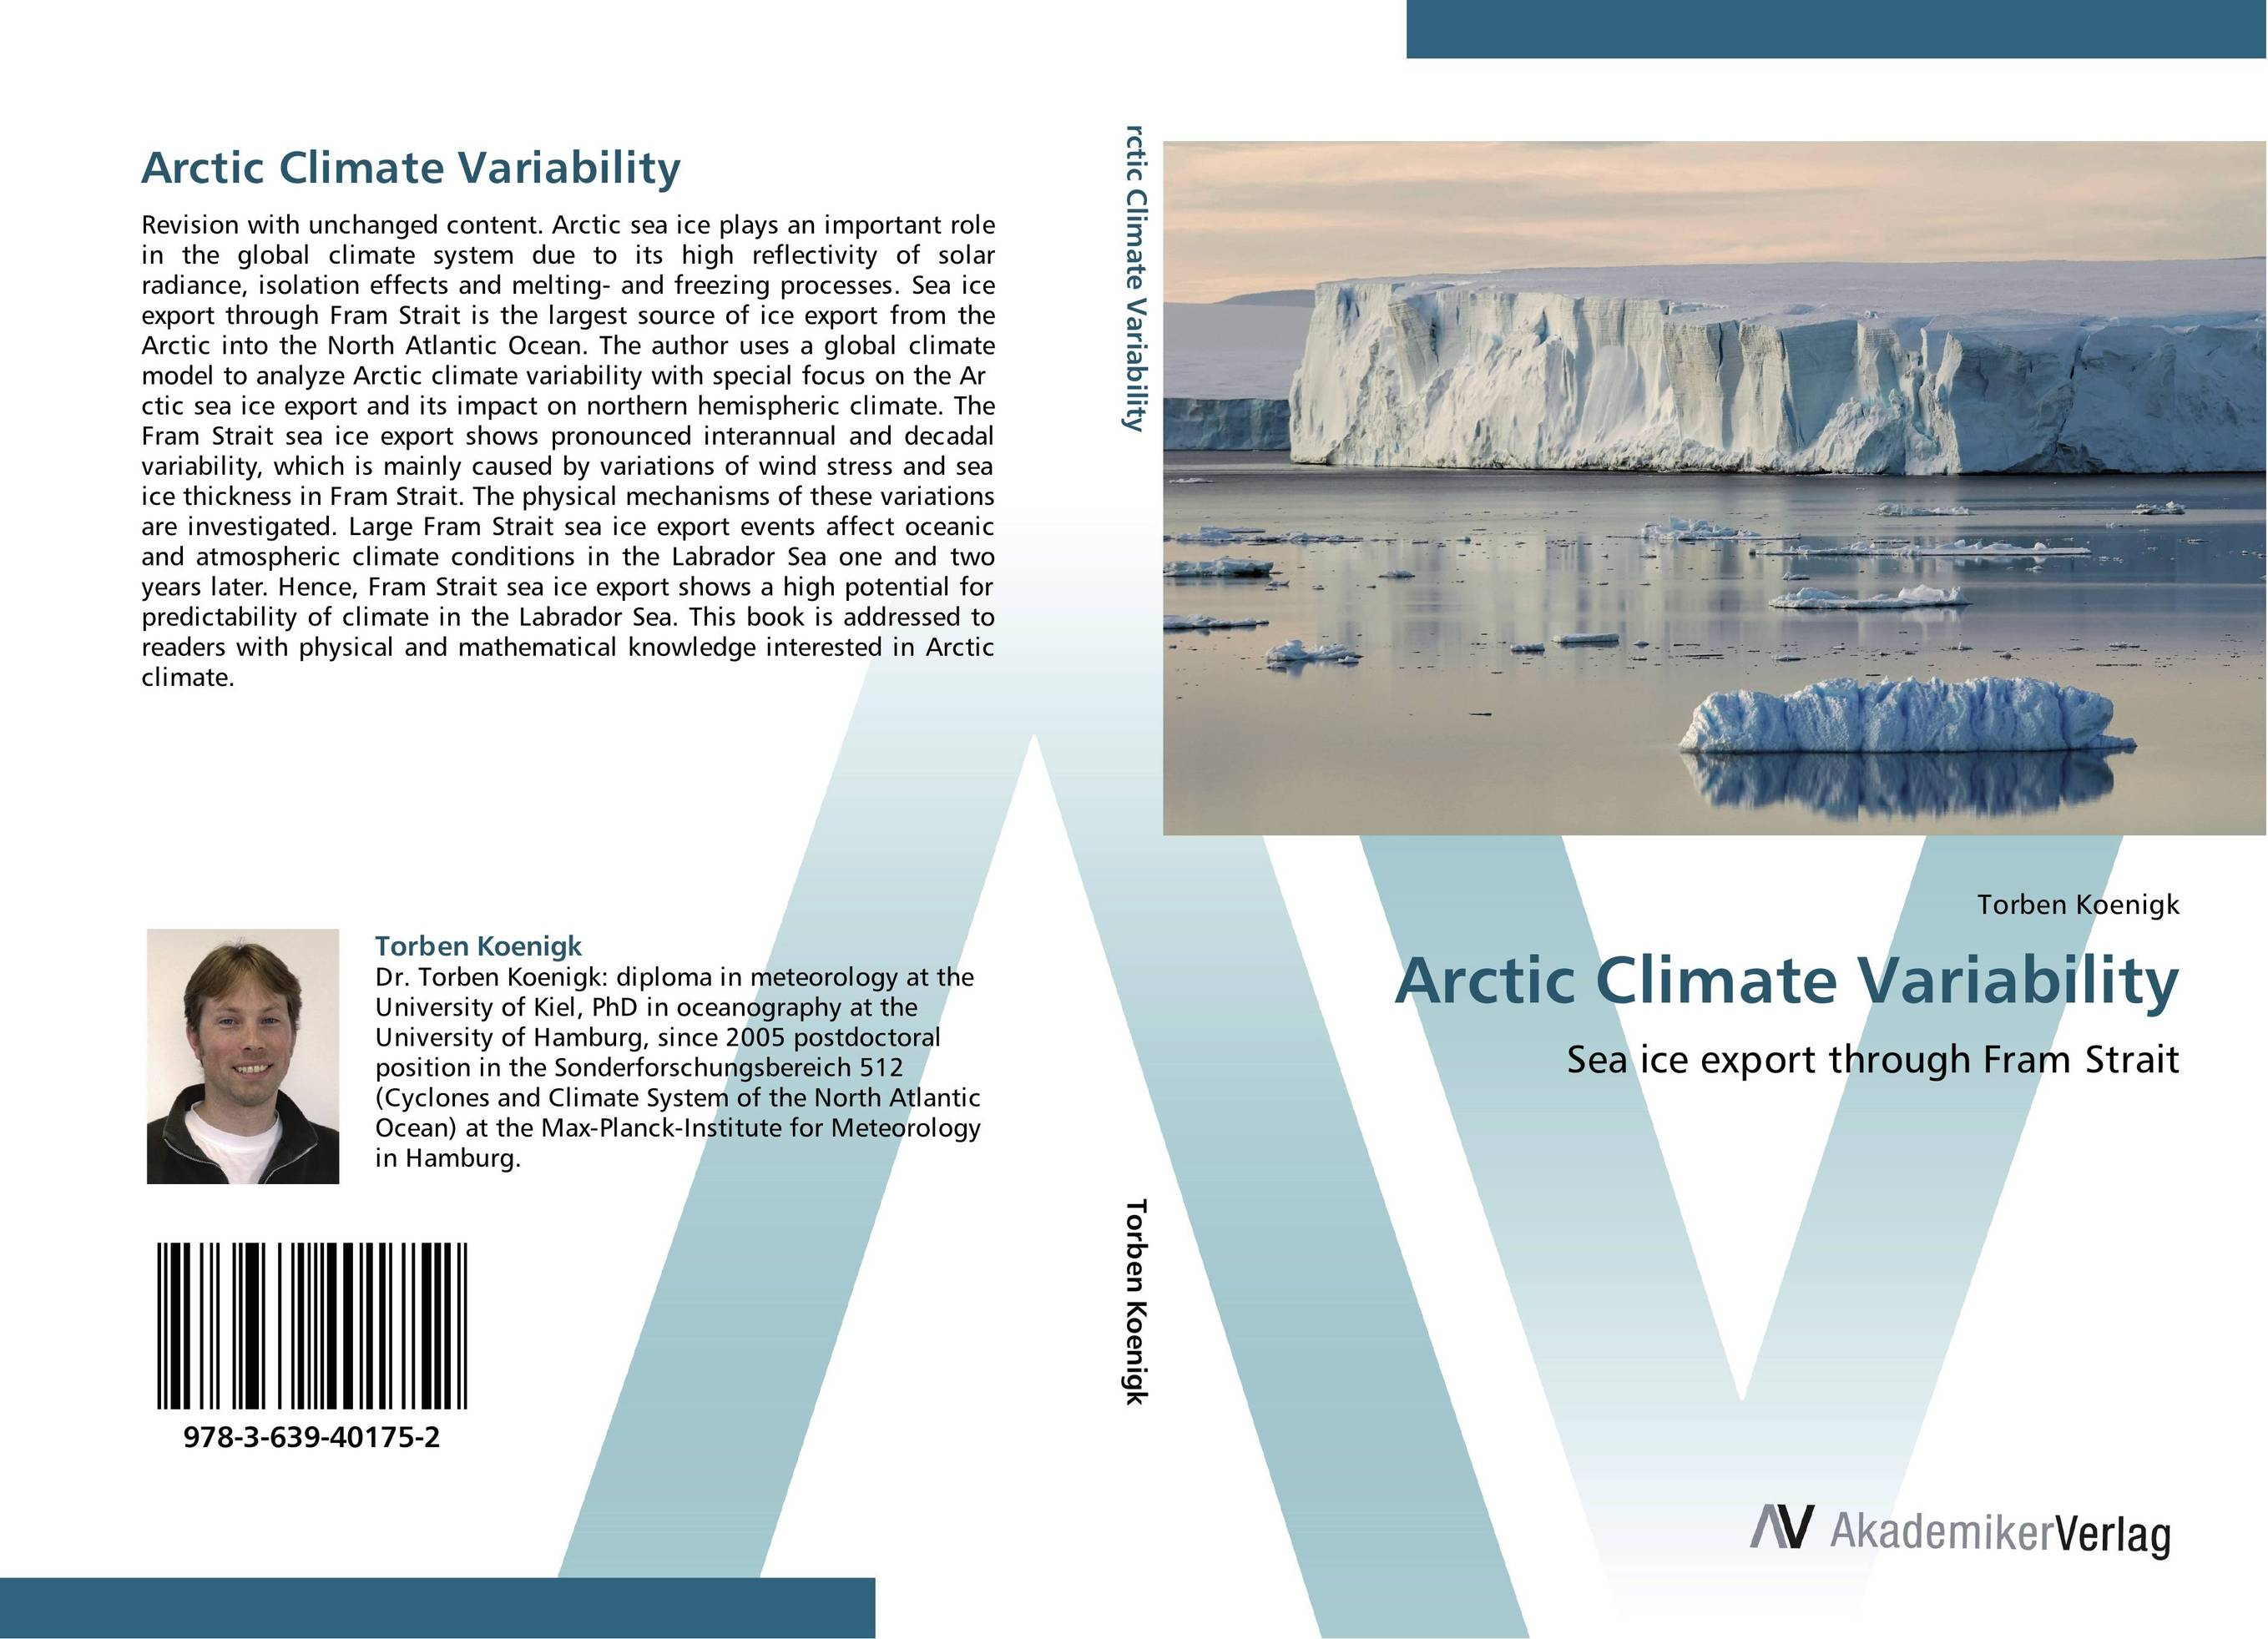 Arctic Climate Variability suh jude abenwi the economic impact of climate variability